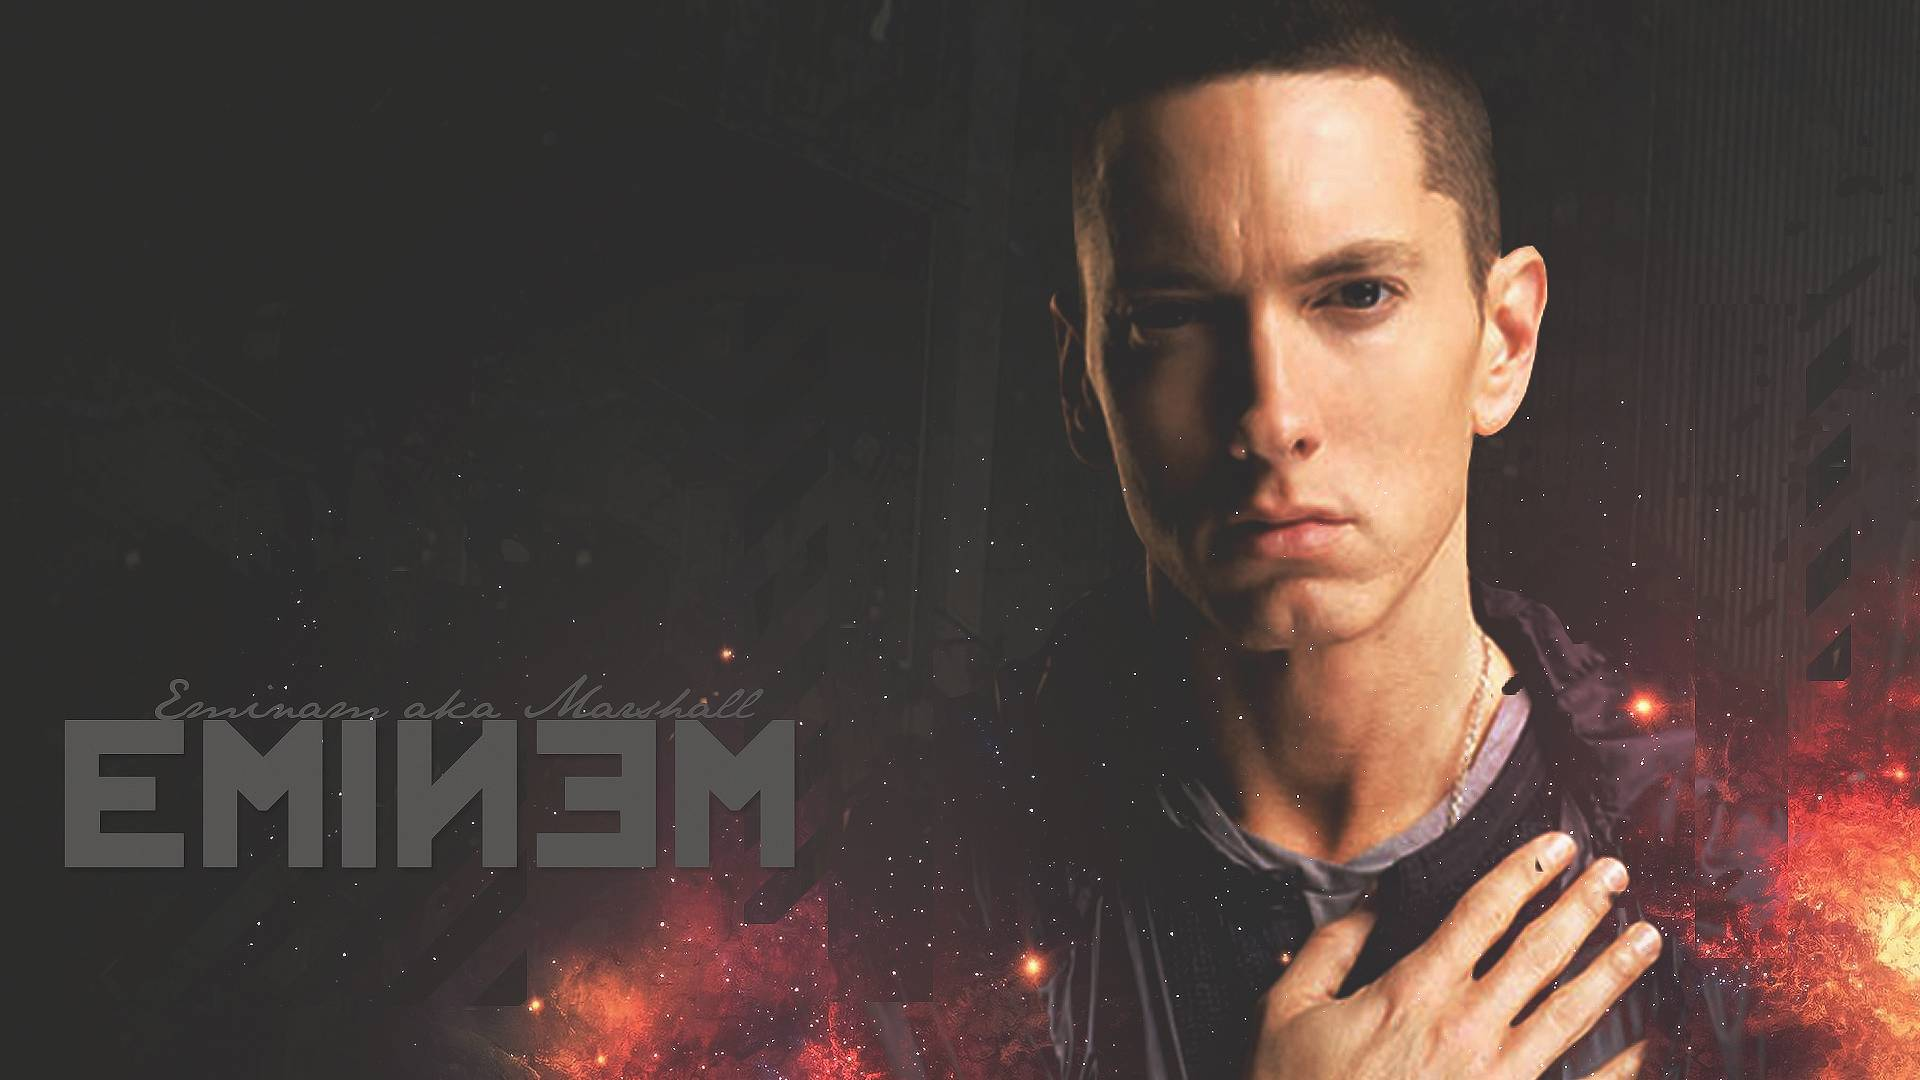 Eminem - Recovery Full Album - YouTube